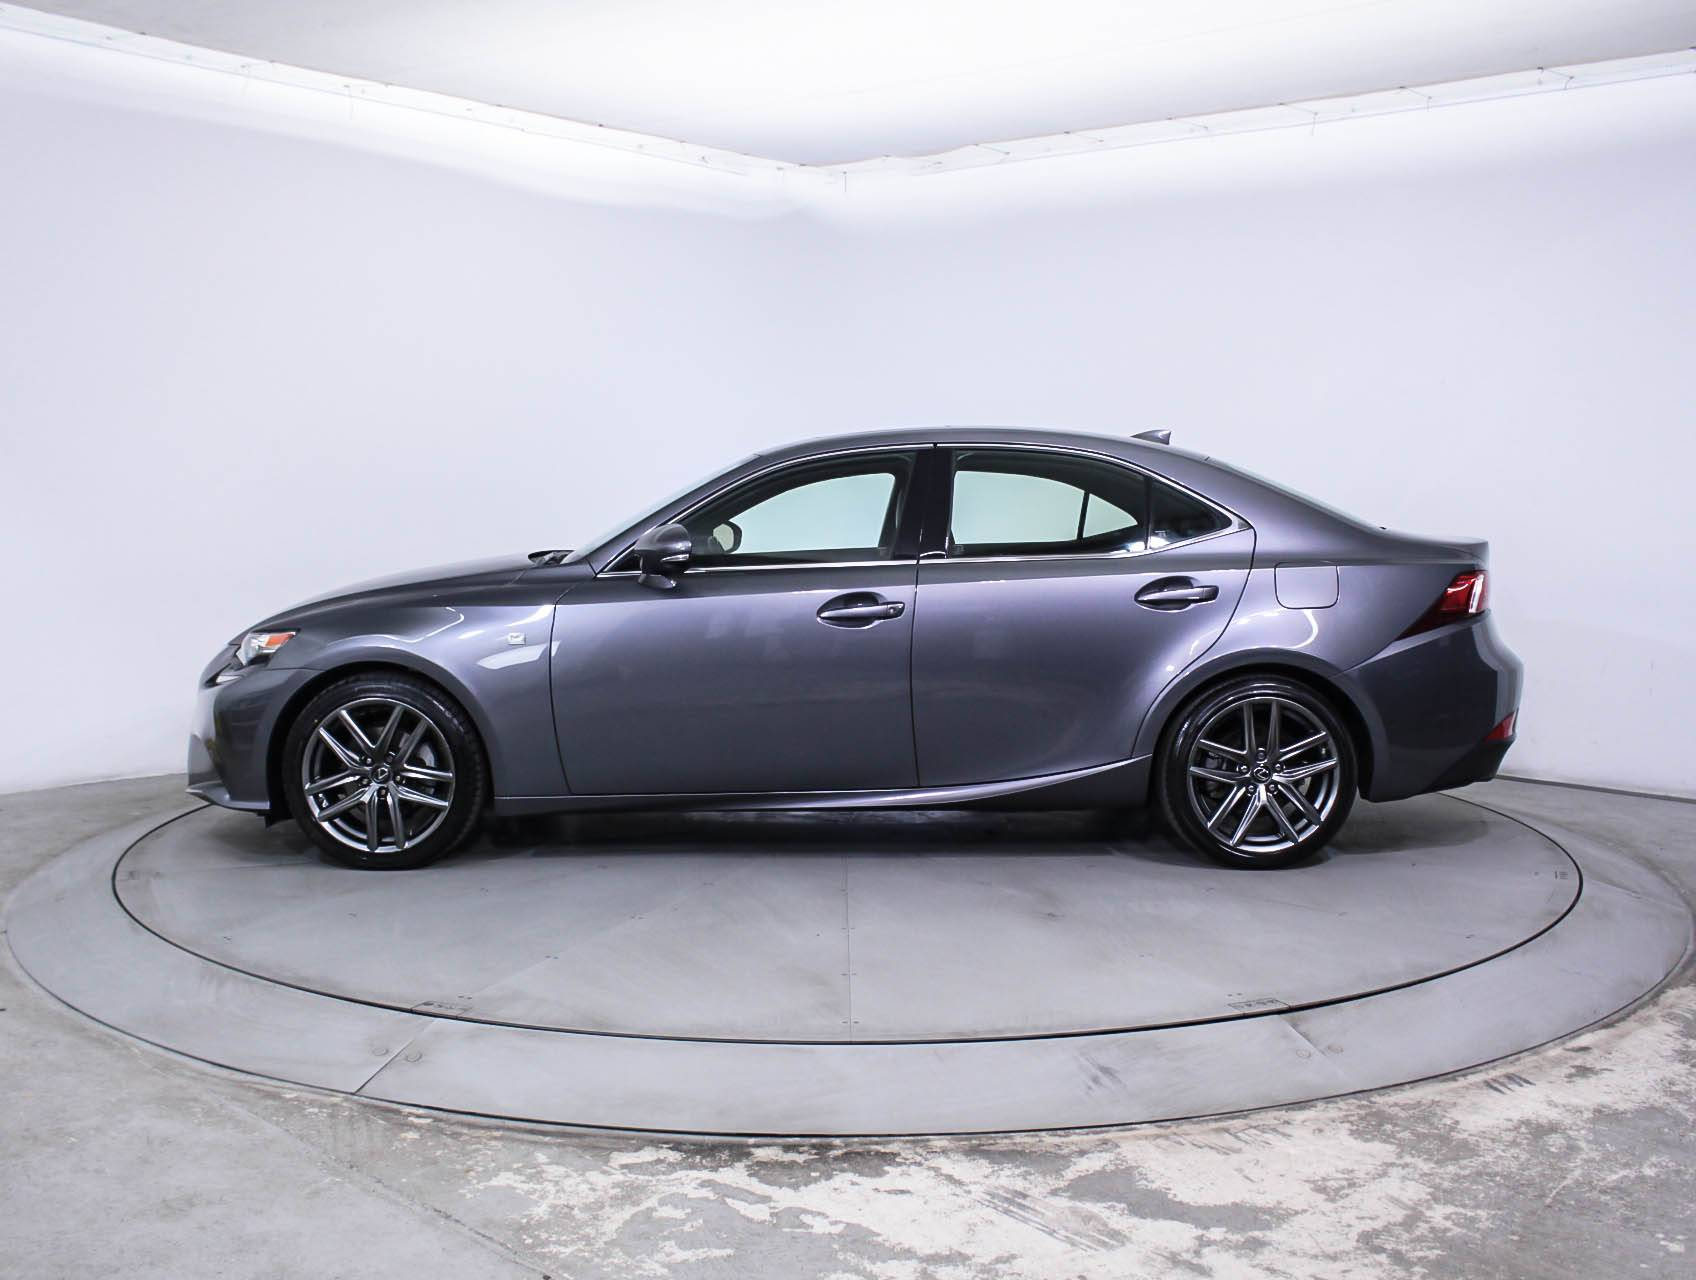 Used 2015 LEXUS IS 250 F Sport Sedan for sale in MIAMI FL